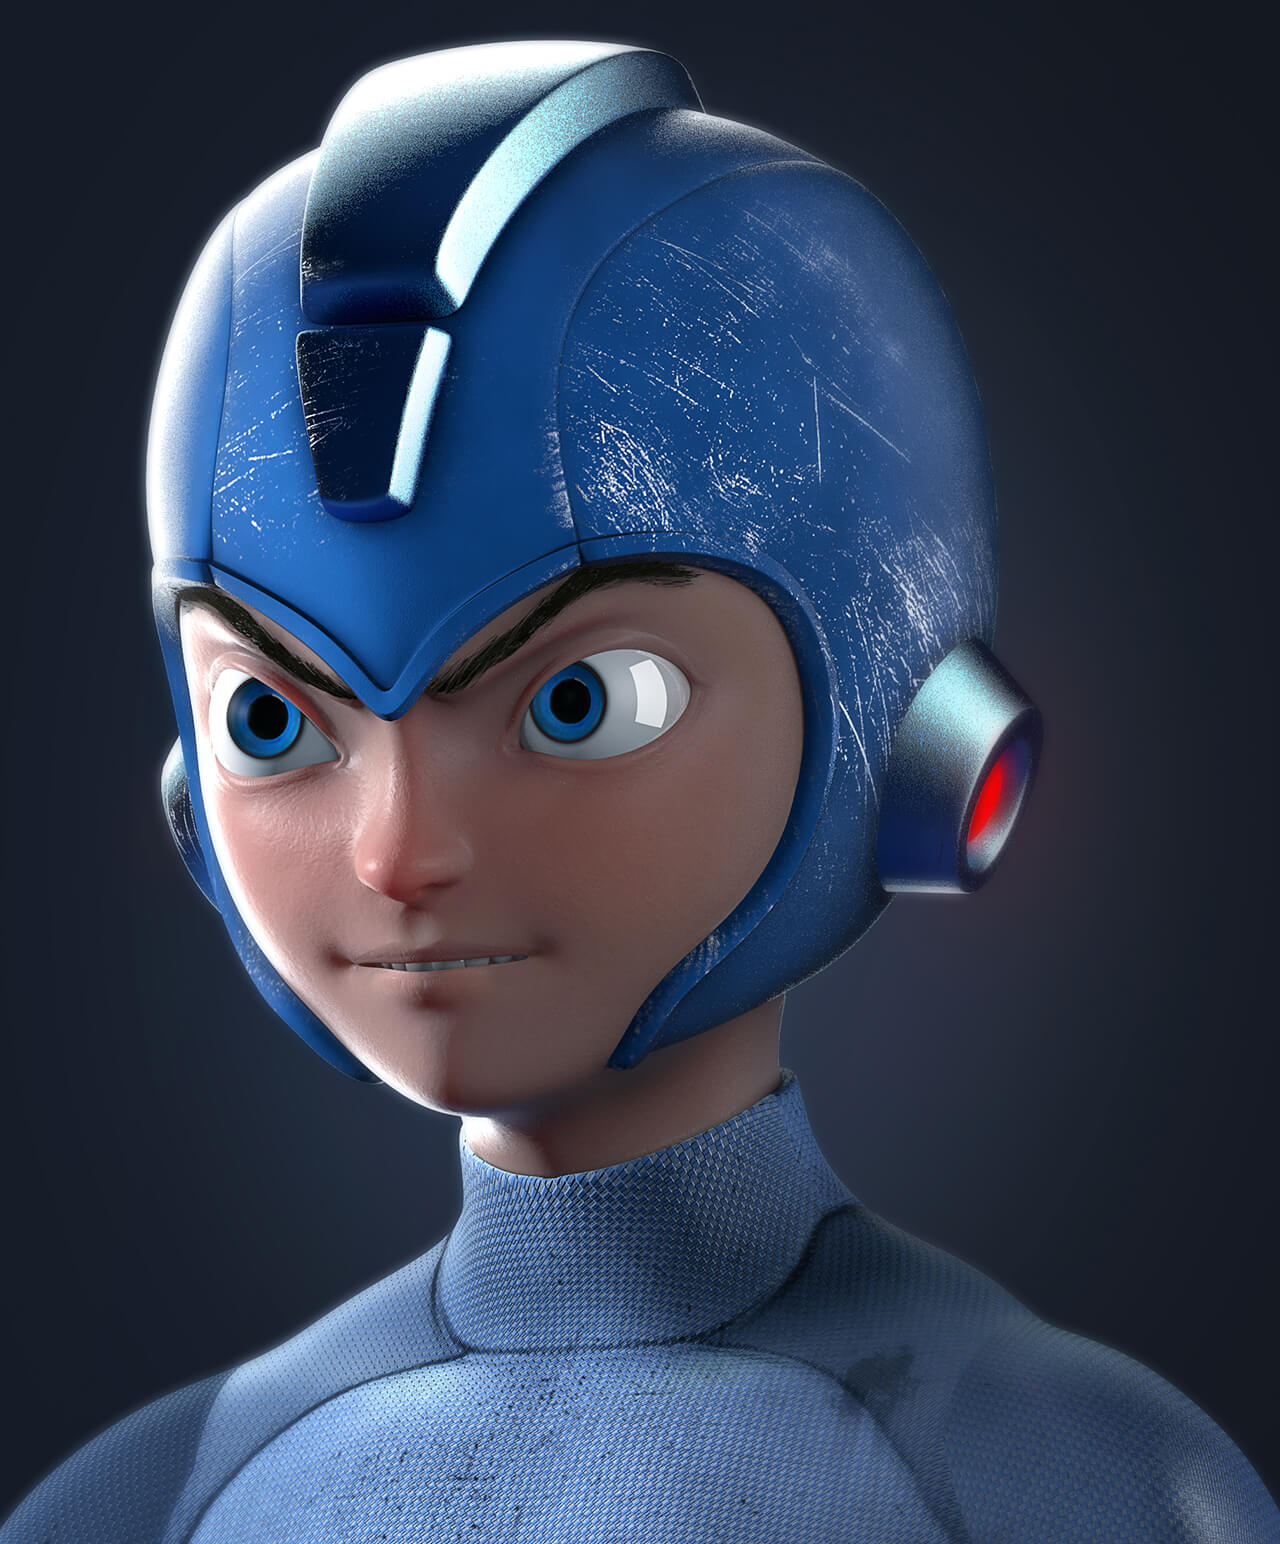 Computer generated image of a space cadet